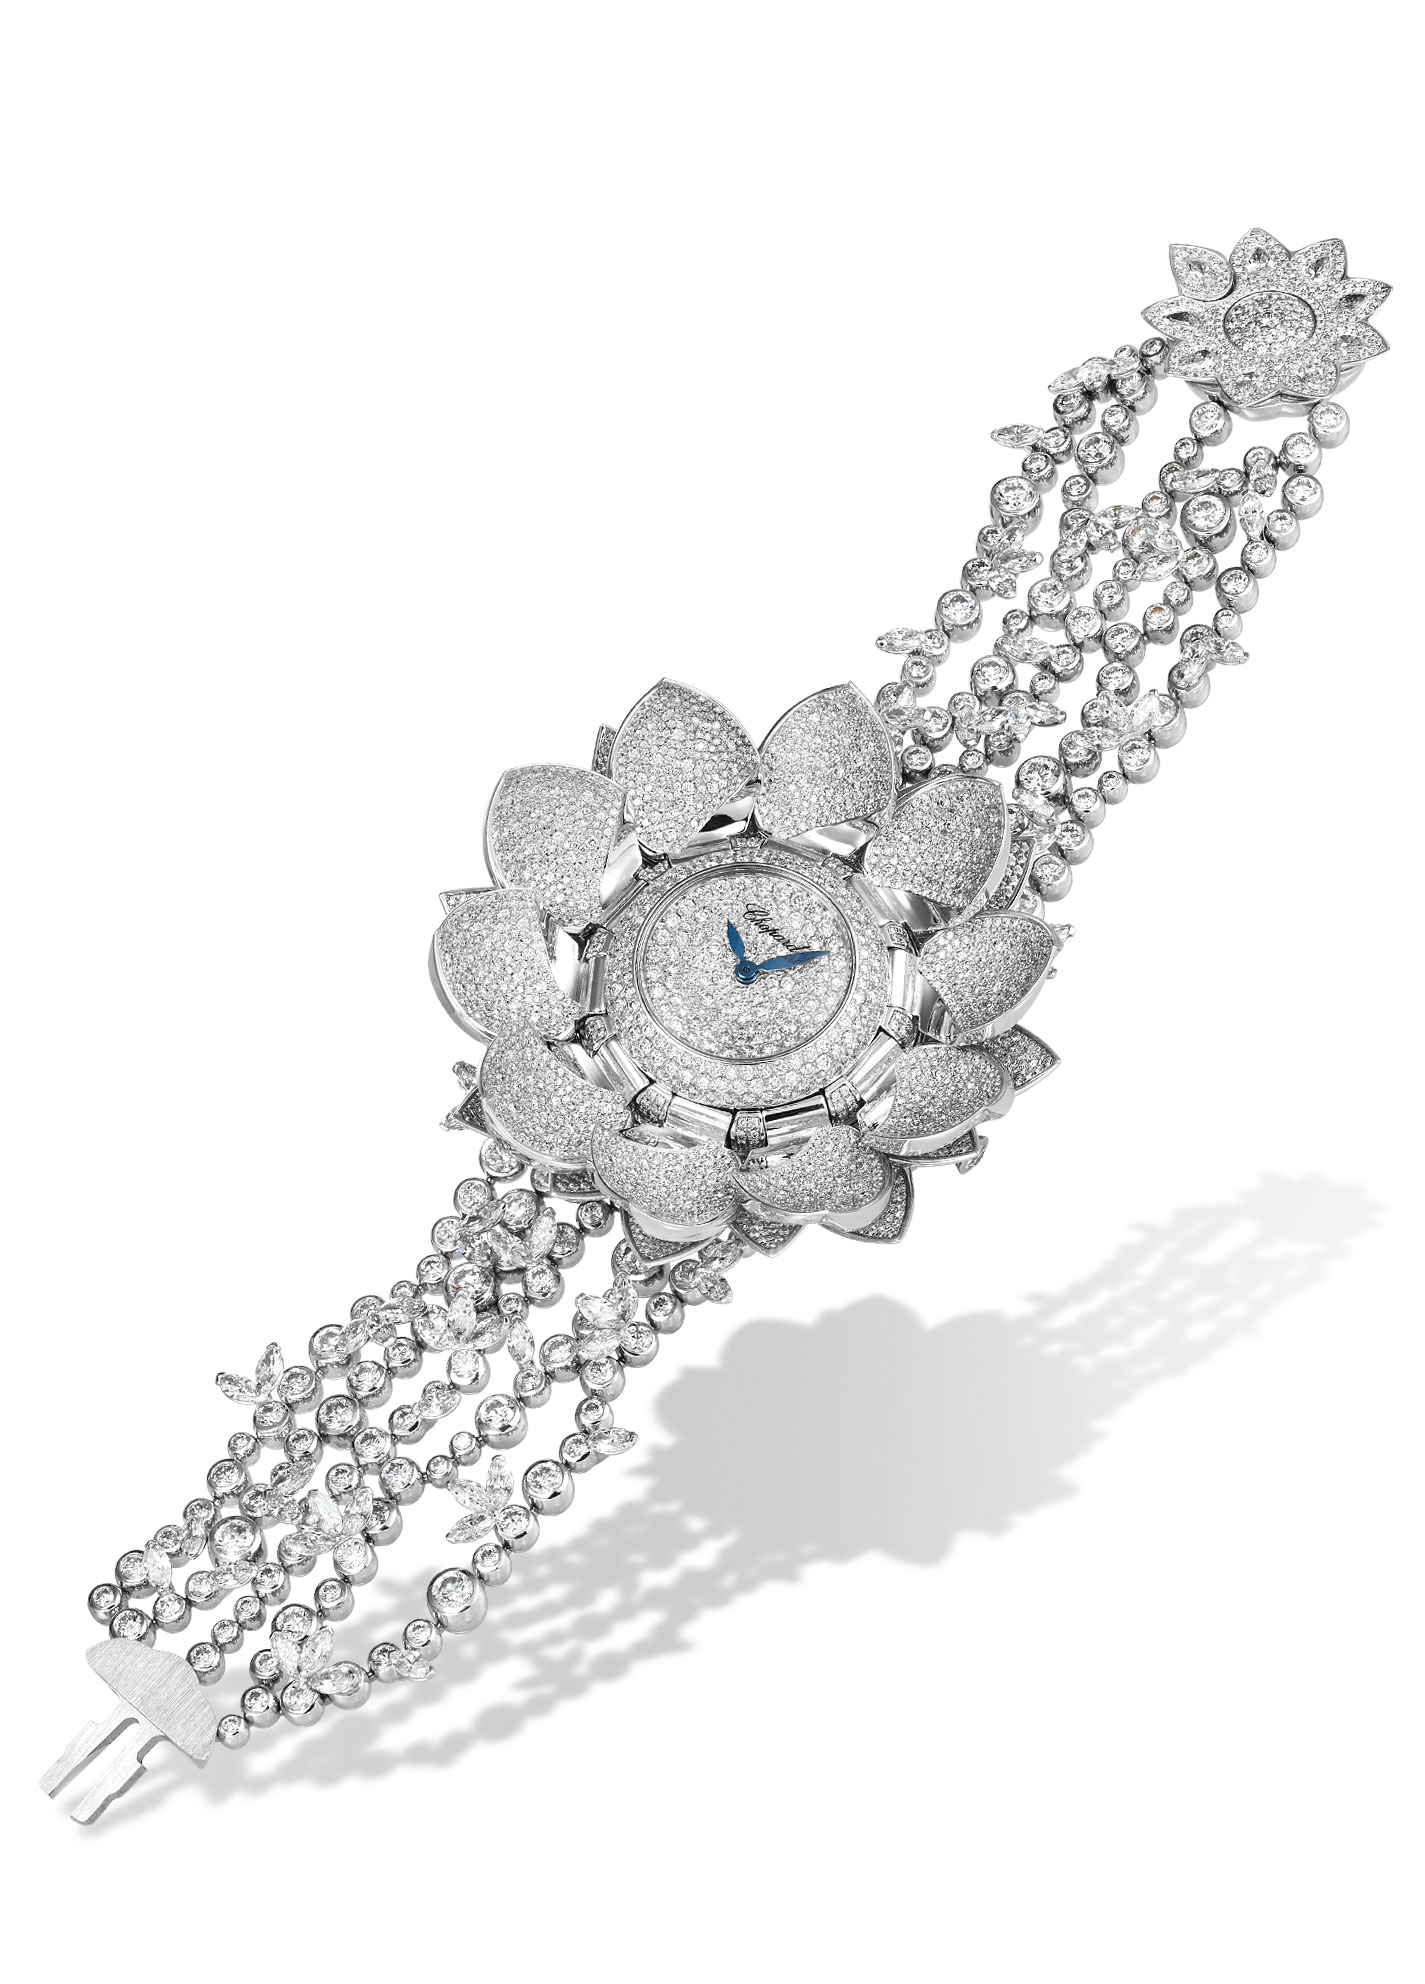 Full view of angled Diamond paved Lotus blanc watch with exposed dial and diamond bracelet